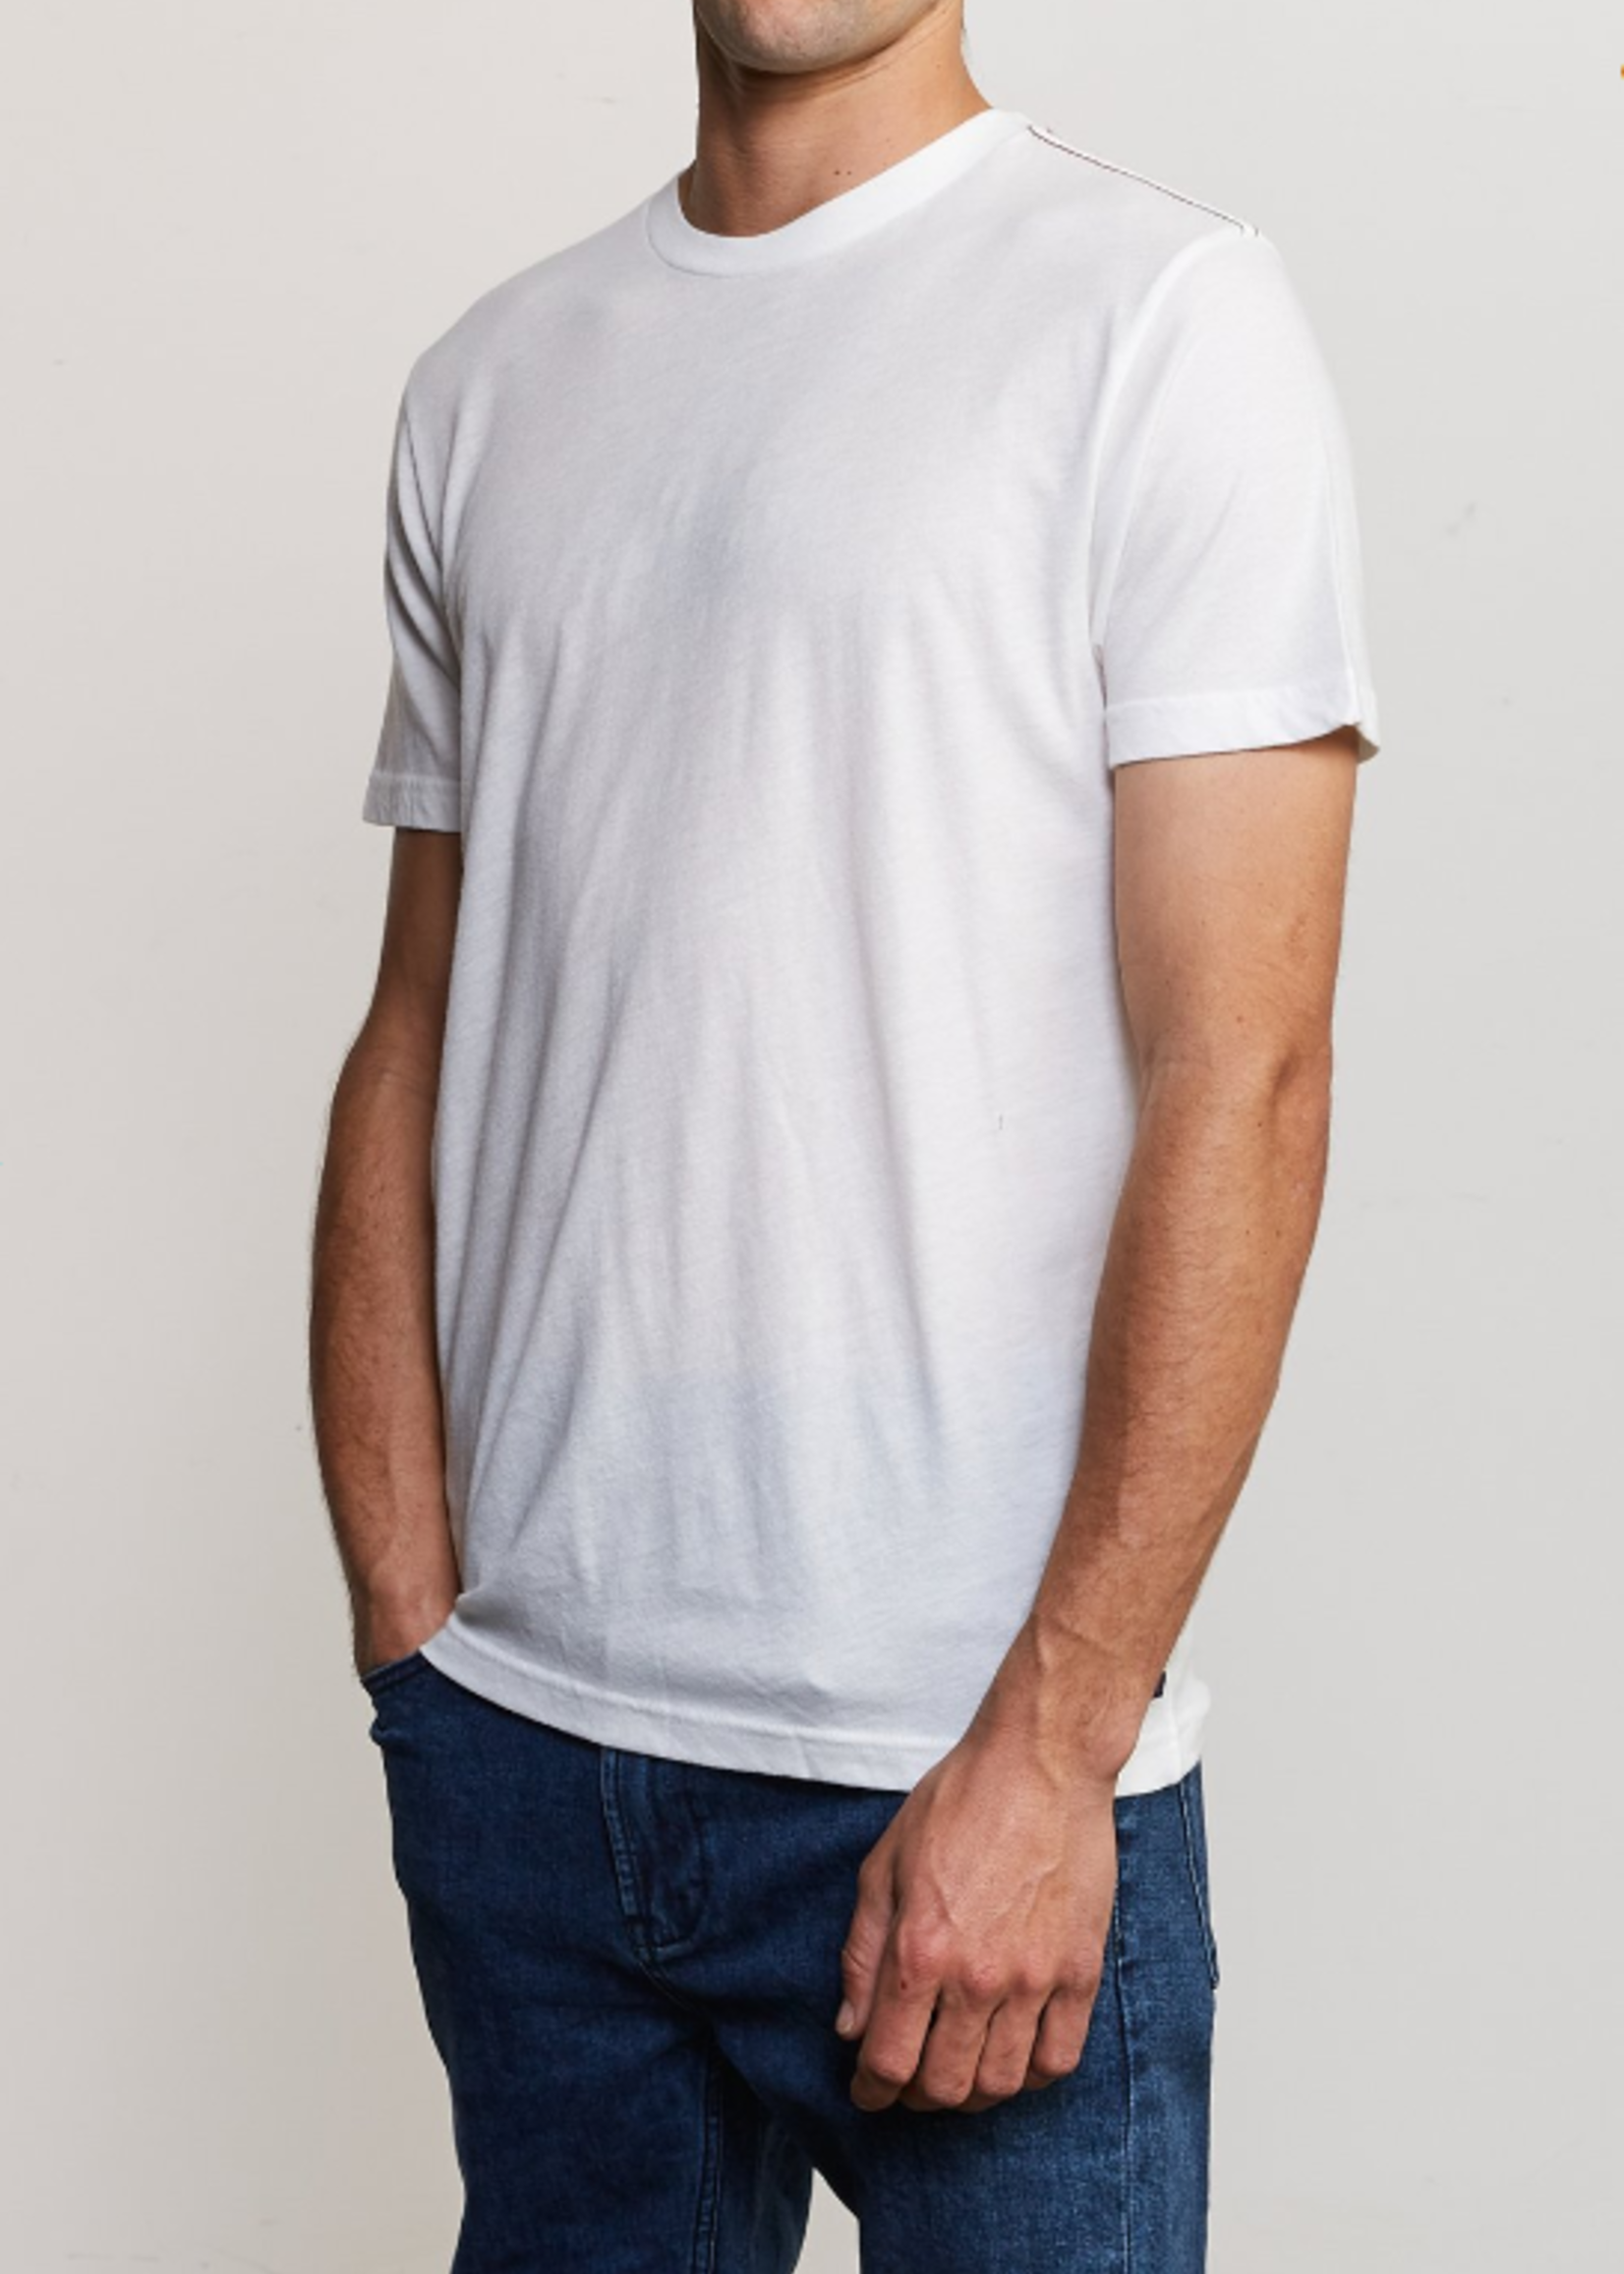 RVCA Solo Label Tee - White